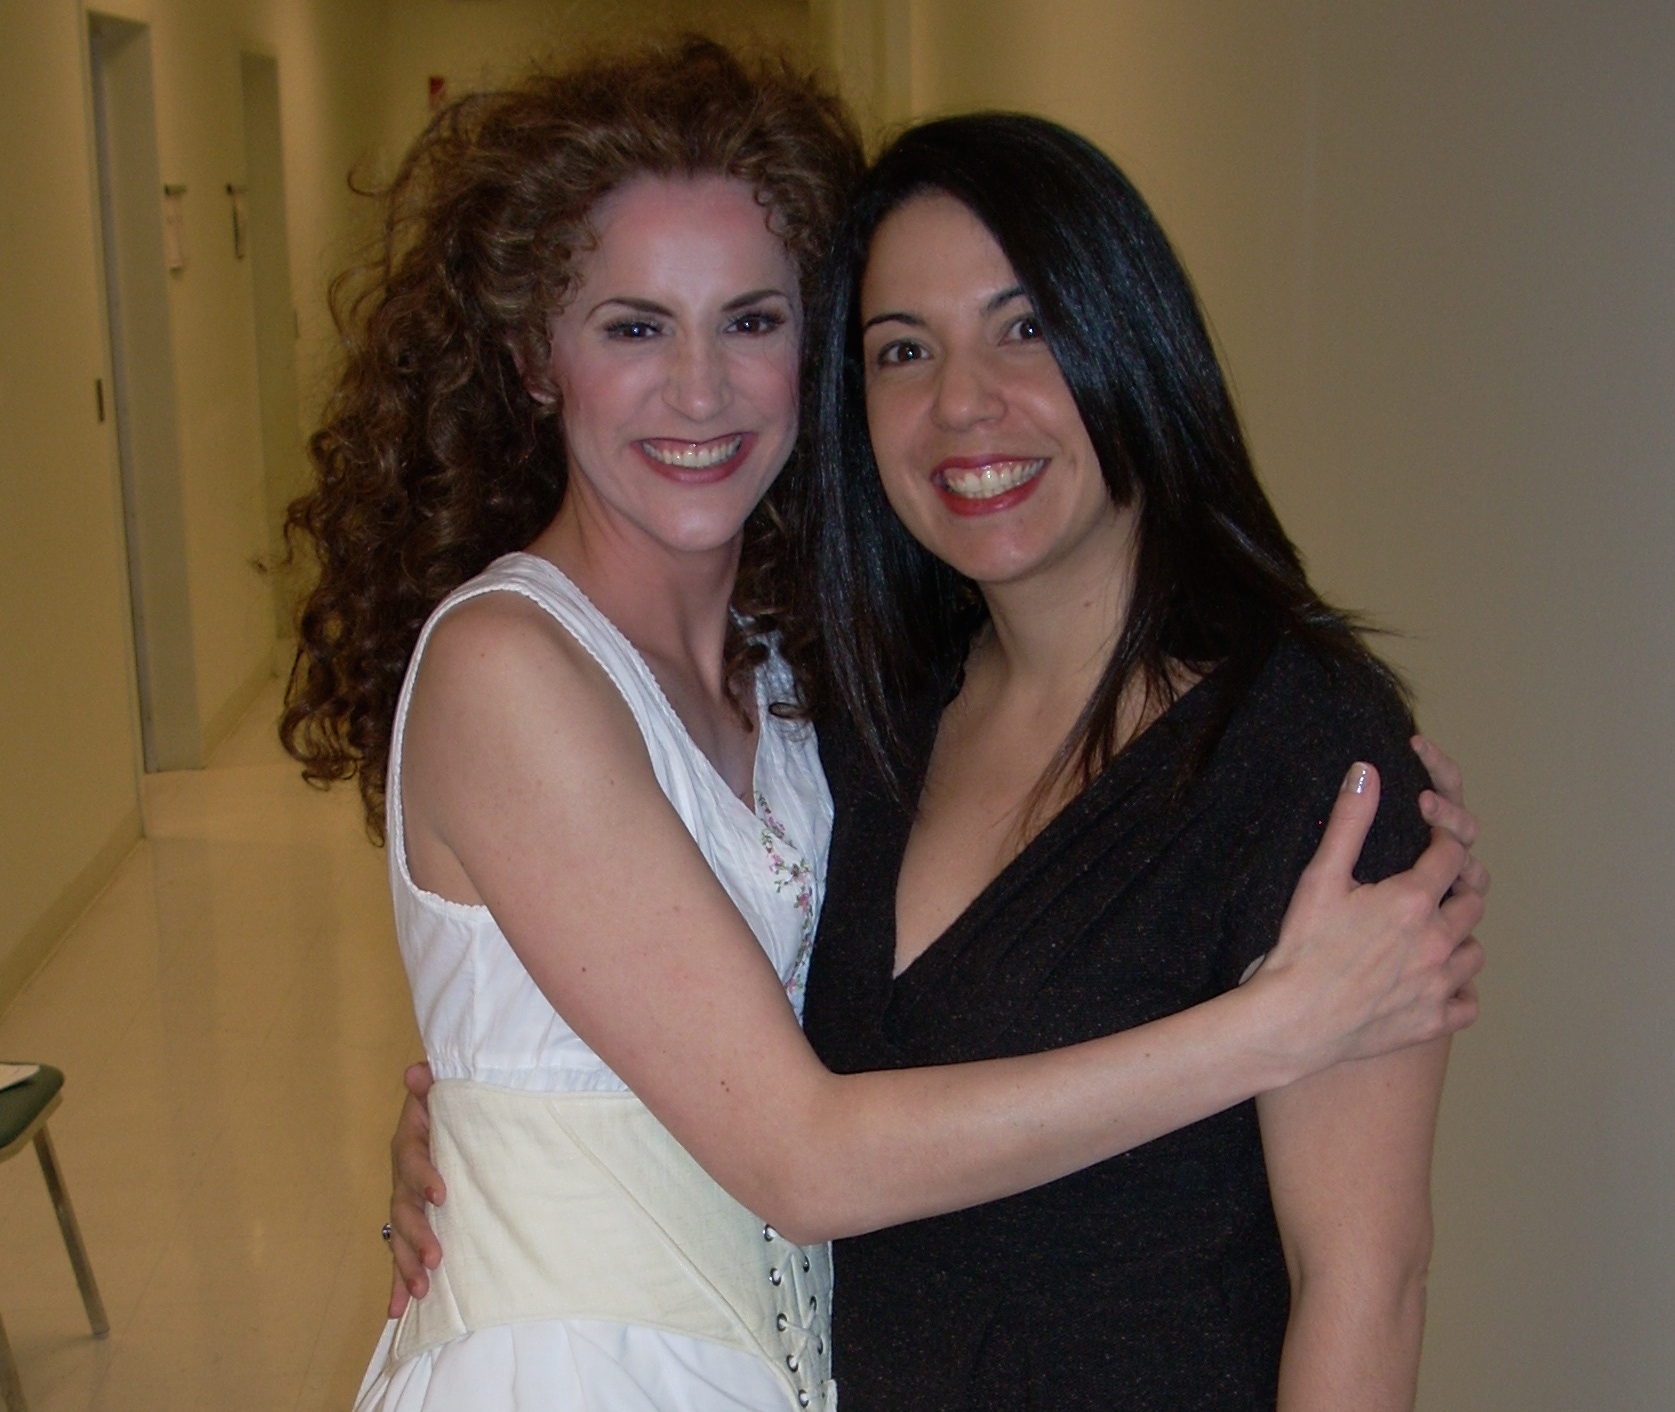 With manager and friend, Ana De Archuleta